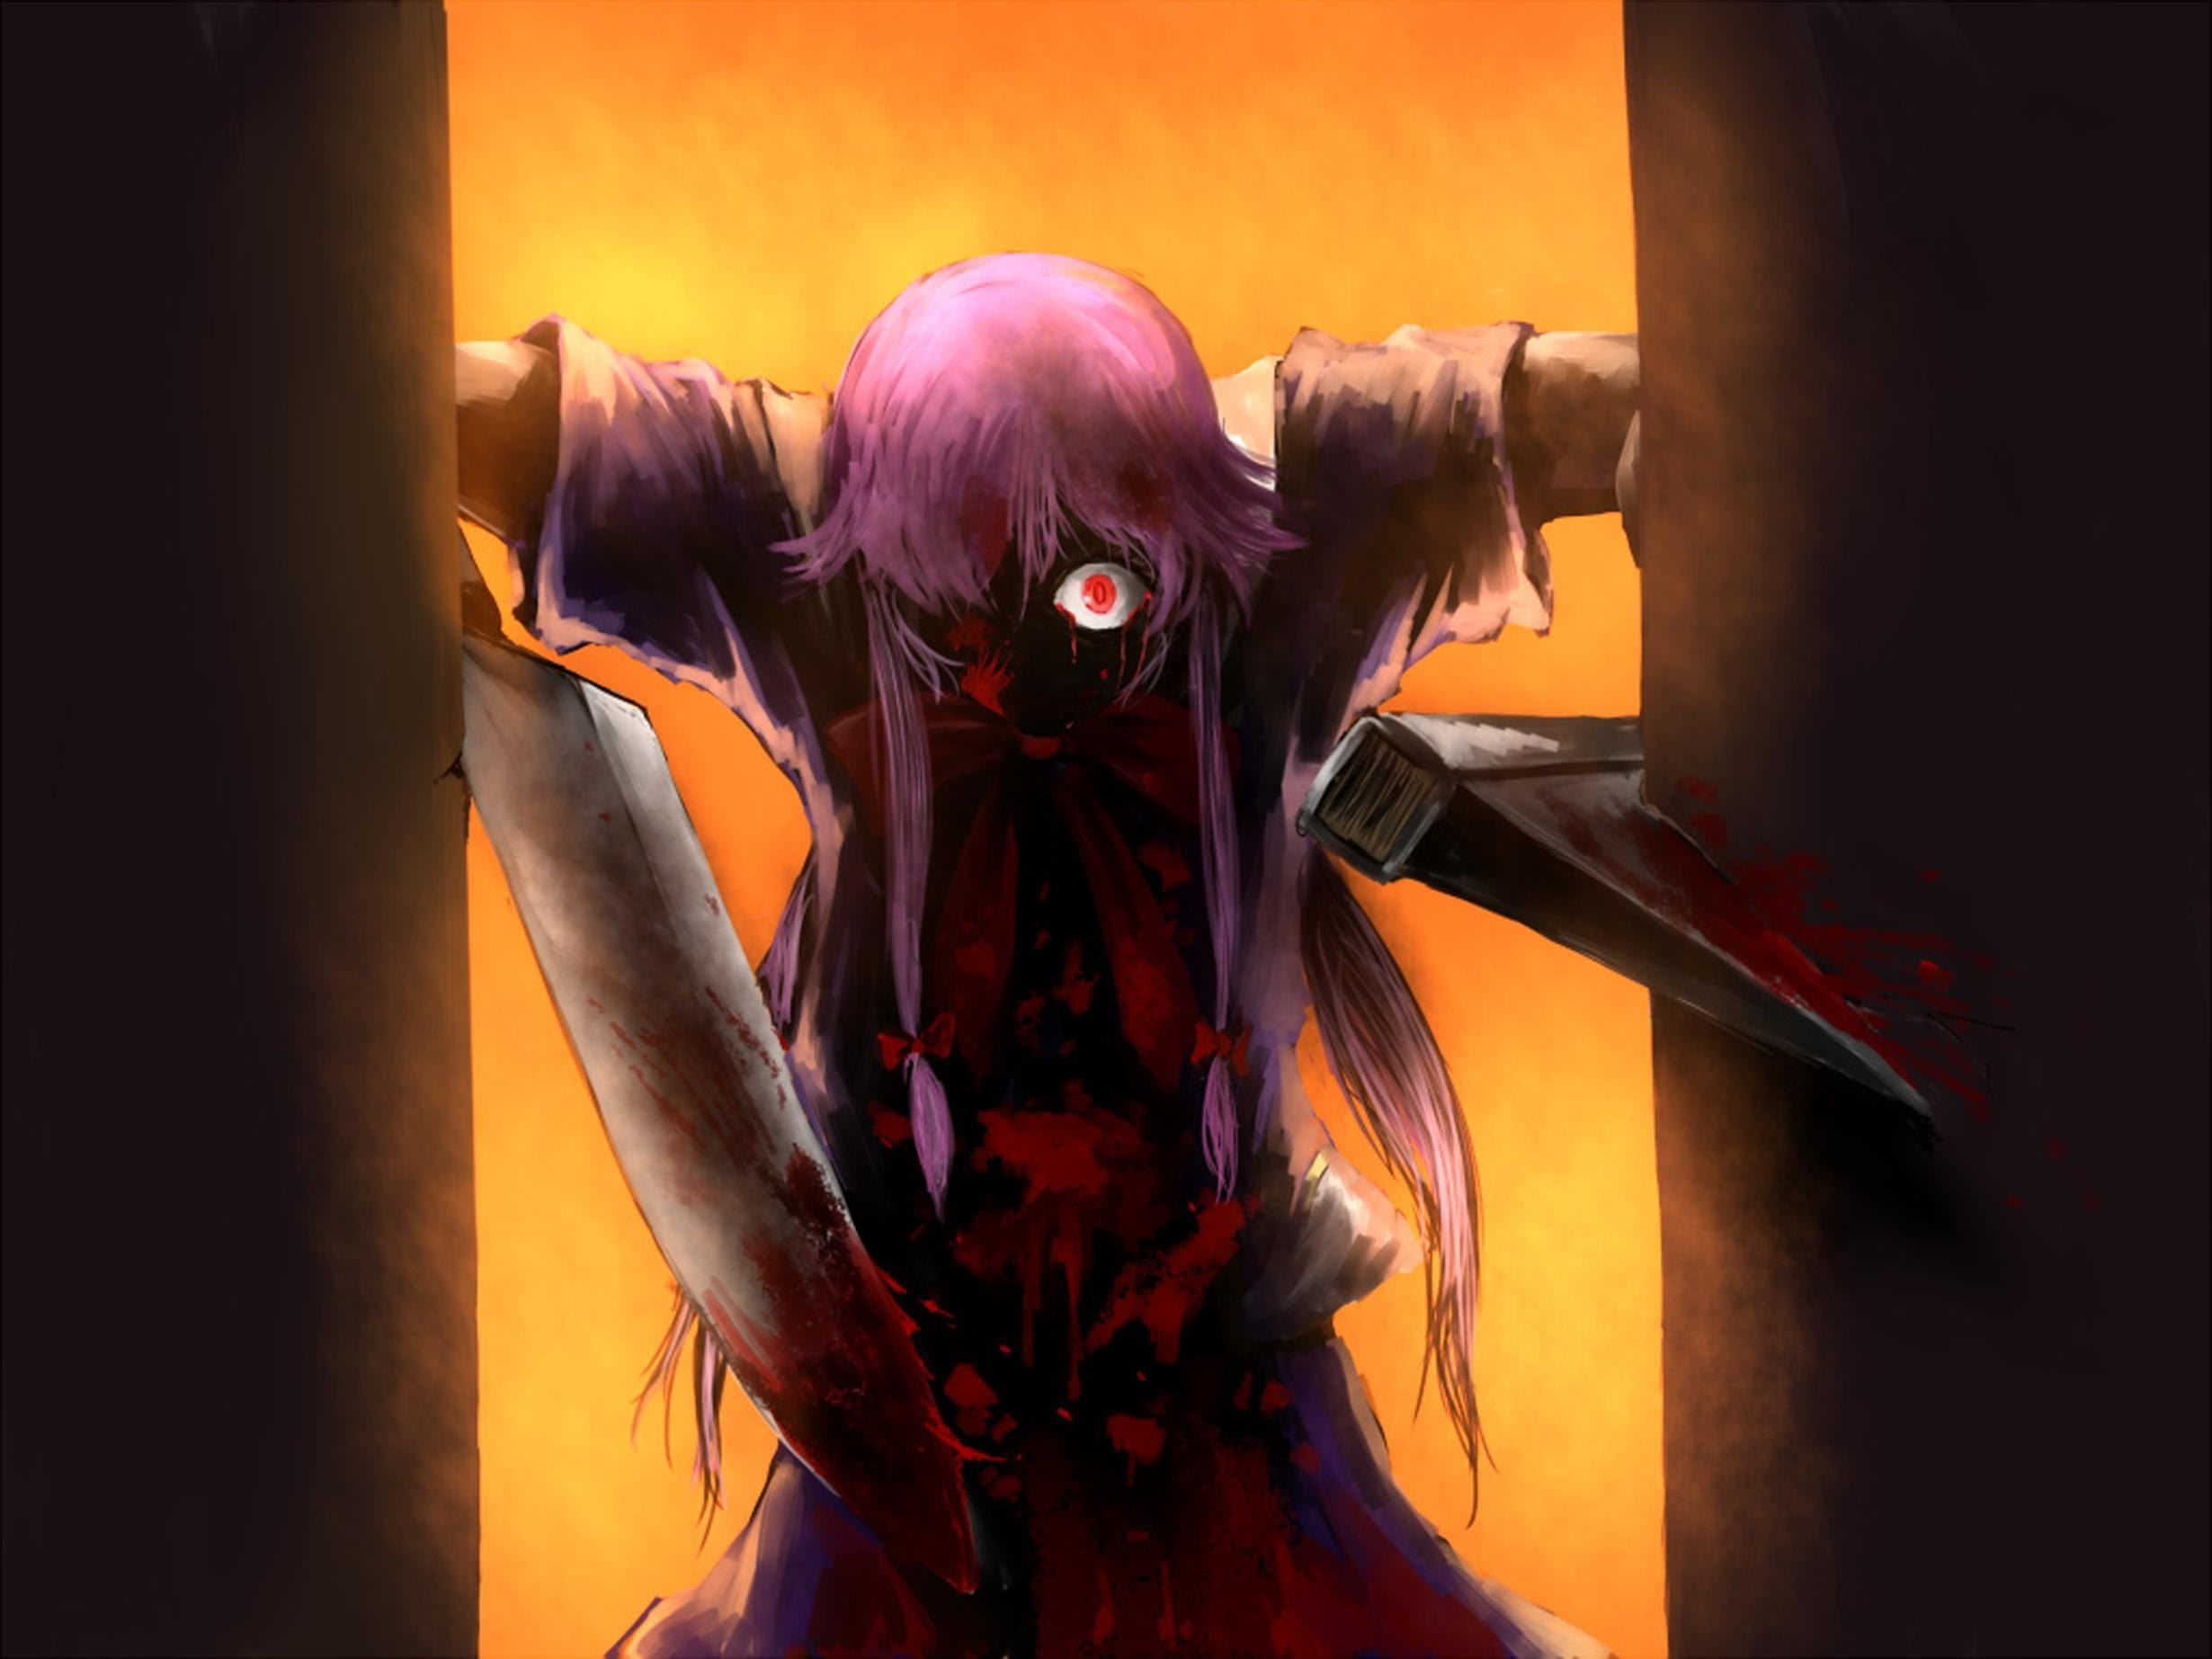 2460x1845 #Scream, #Gasai Yuno, #blood, #Mirai Nikki, #yandere, #axes, wallpaper